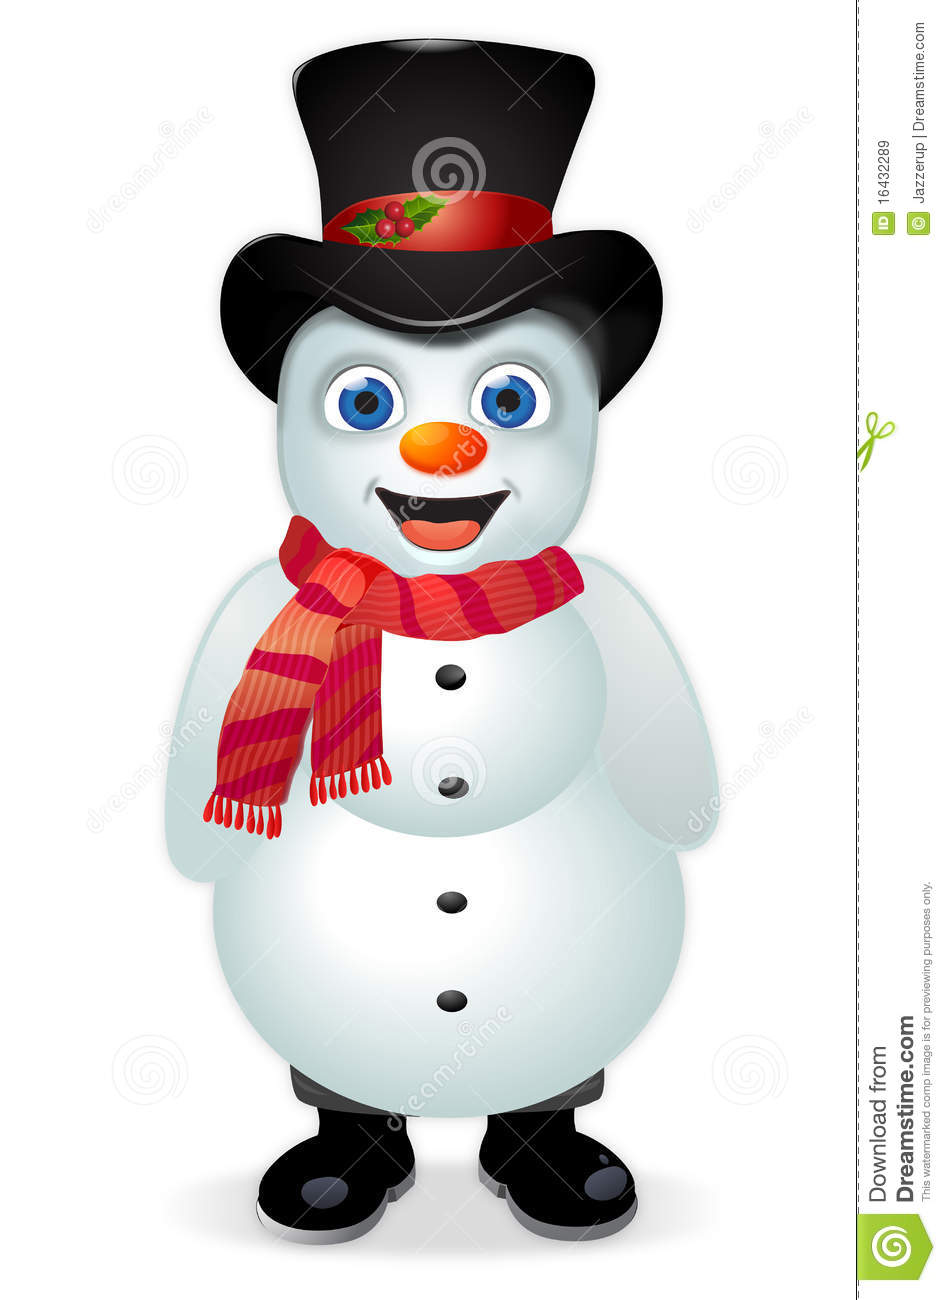 Frosty The Snowman Royalty Free Stock Images.